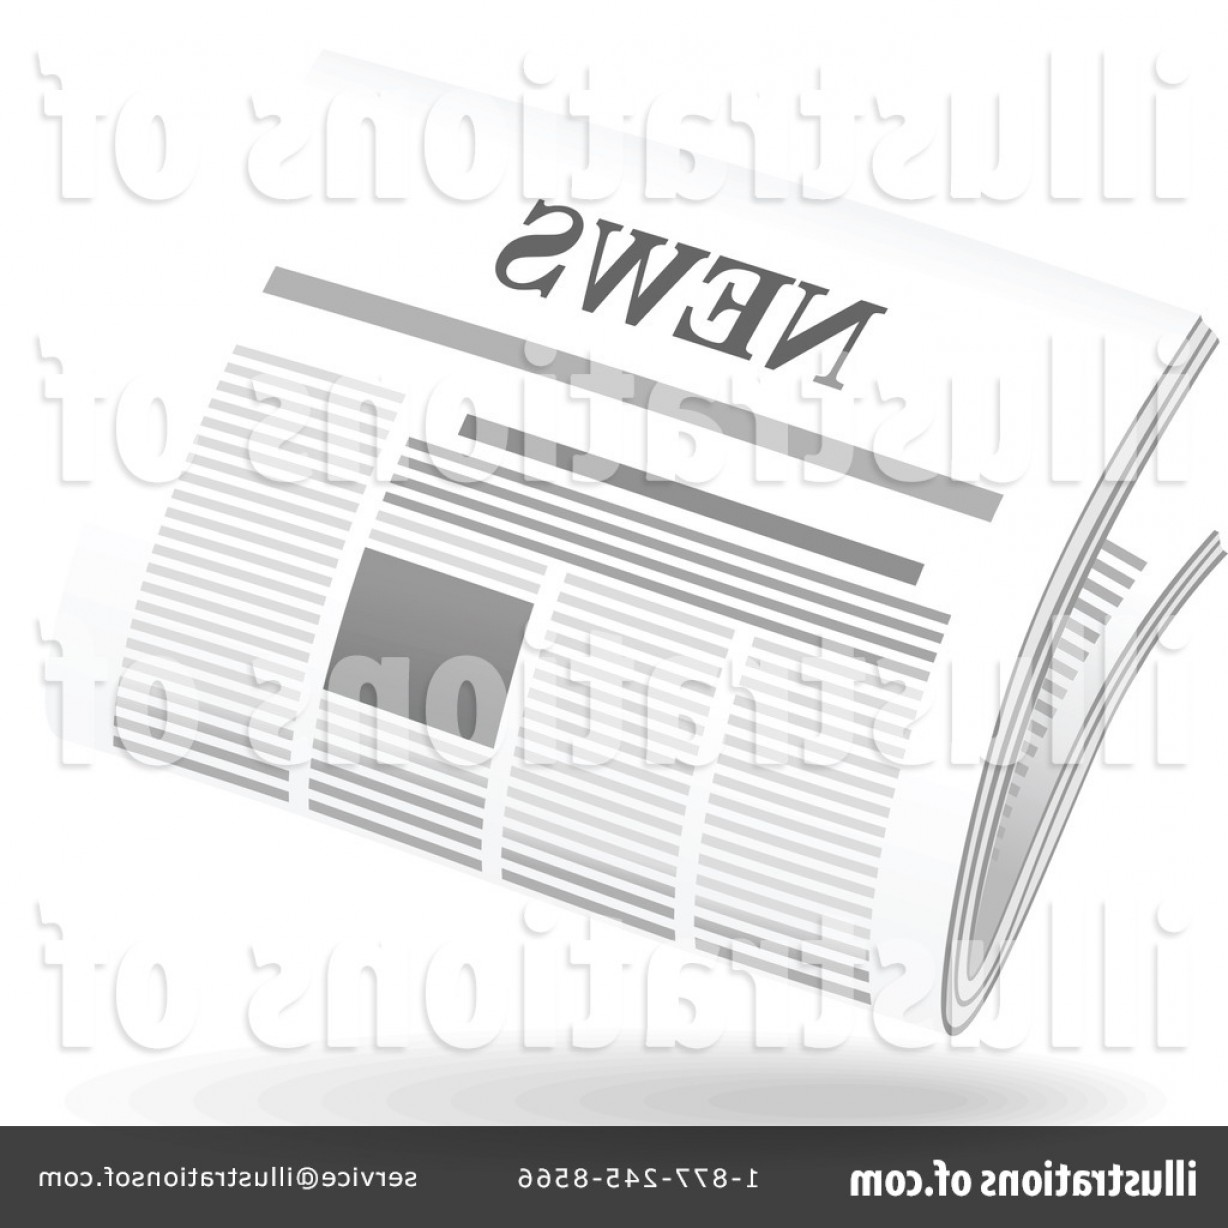 Newspaper Clip Art Vector: Royalty Free Newspaper Clipart Illustration